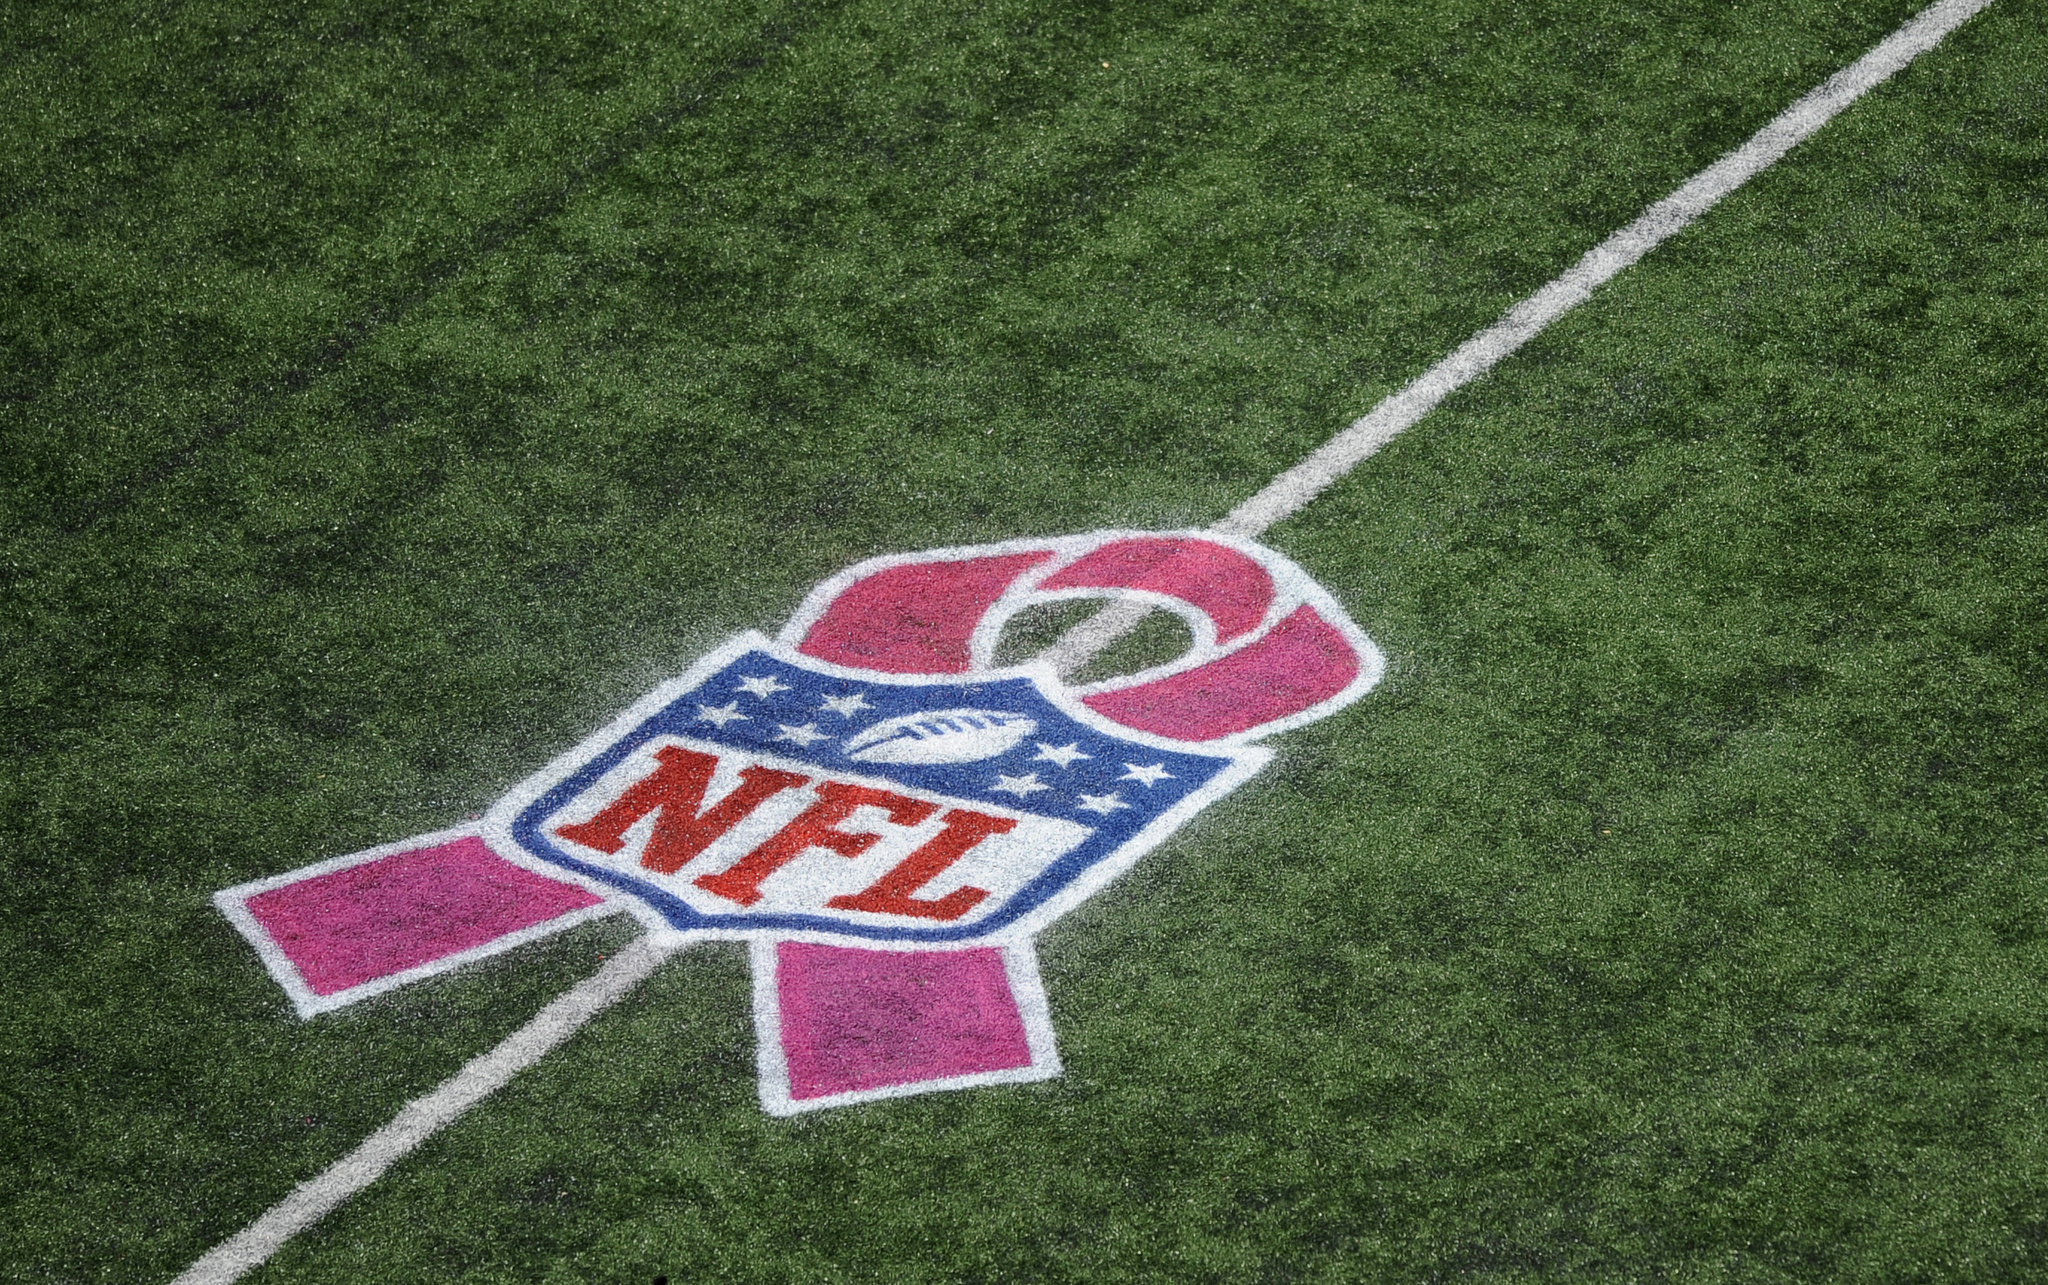 NFL domestic violence controversy spurs Procter & Gamble to…